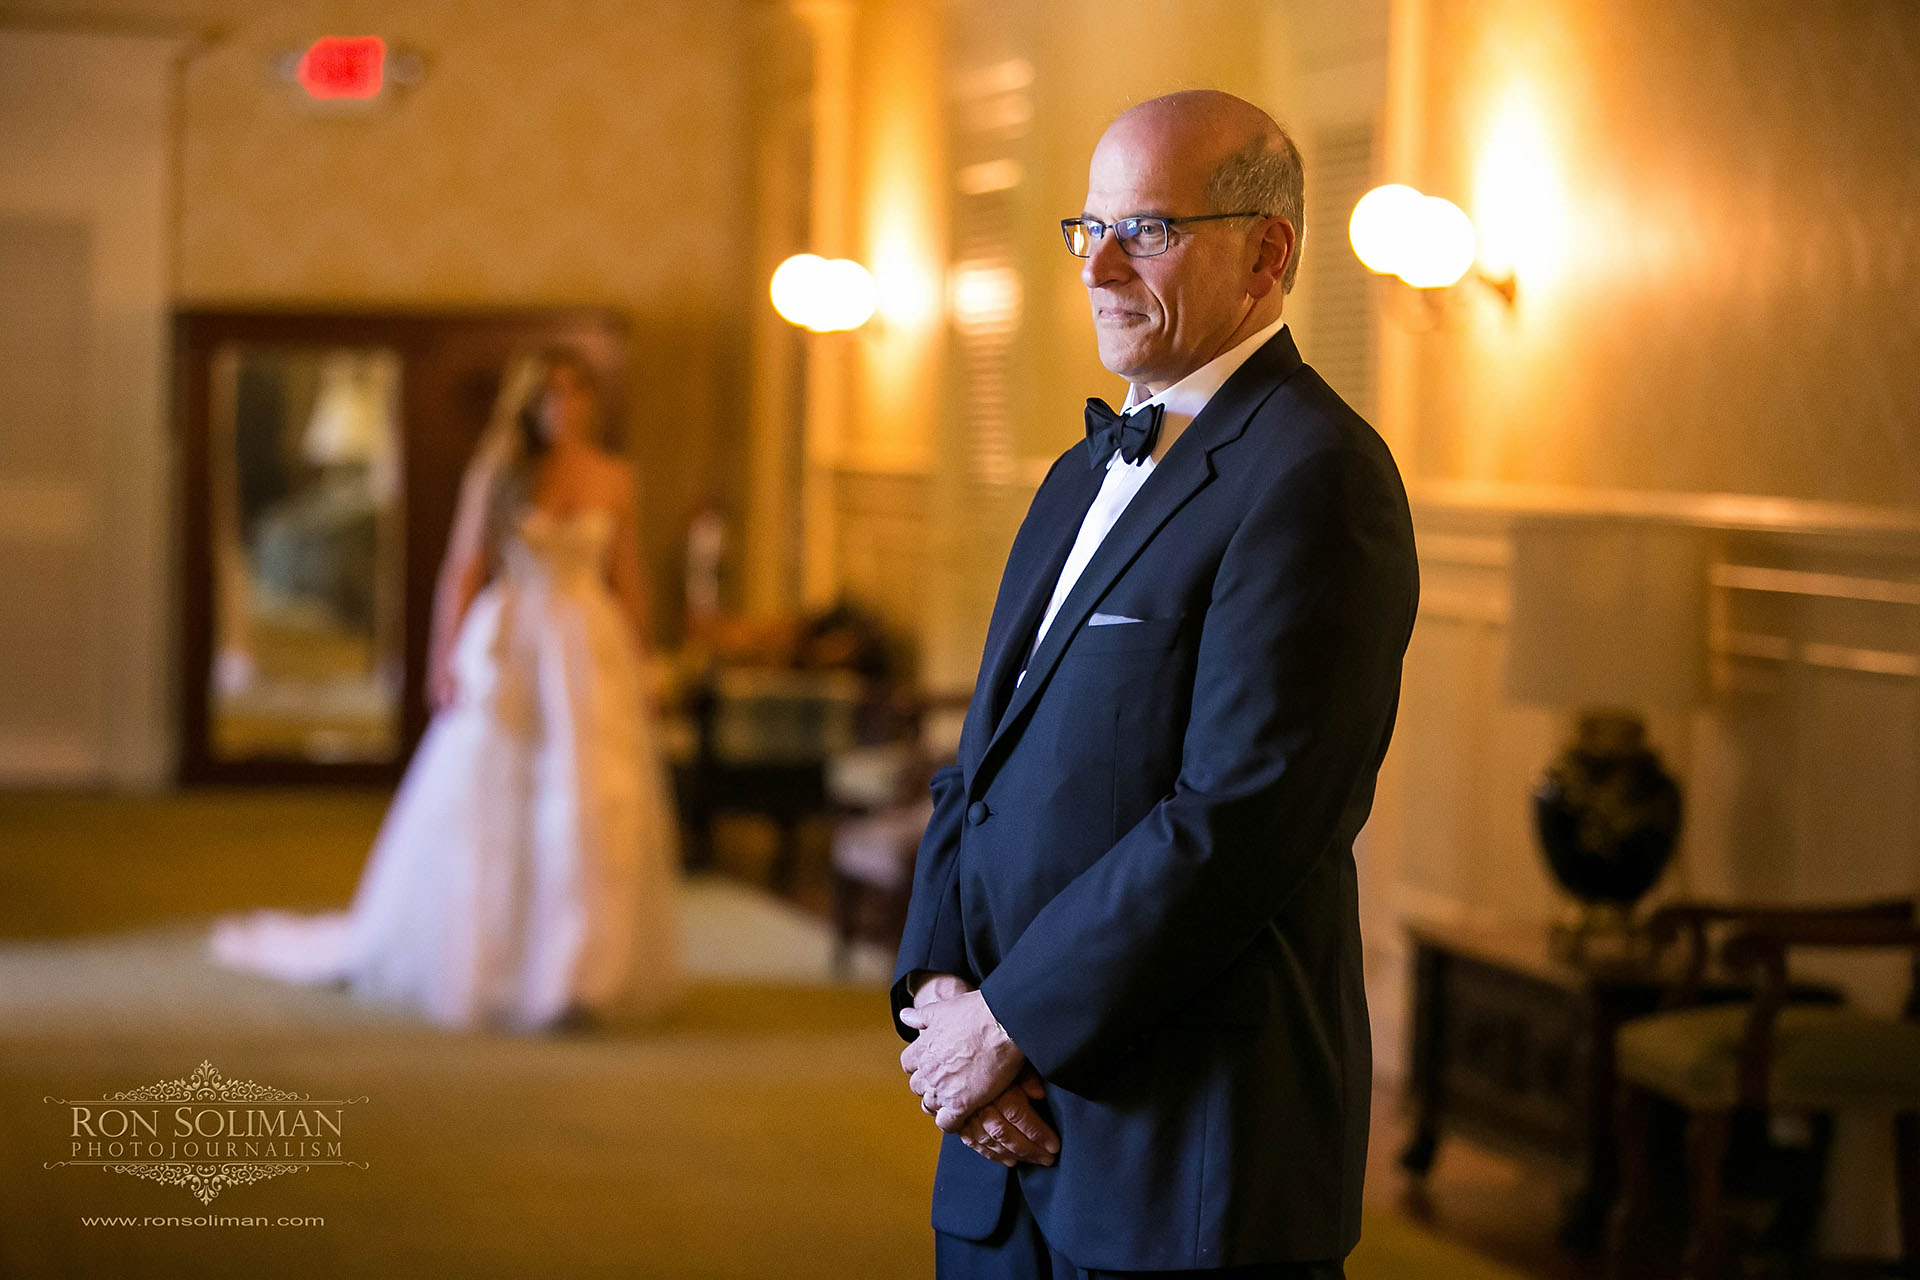 SLEEPY HOLLOW COUNTRY CLUB WEDDING photos